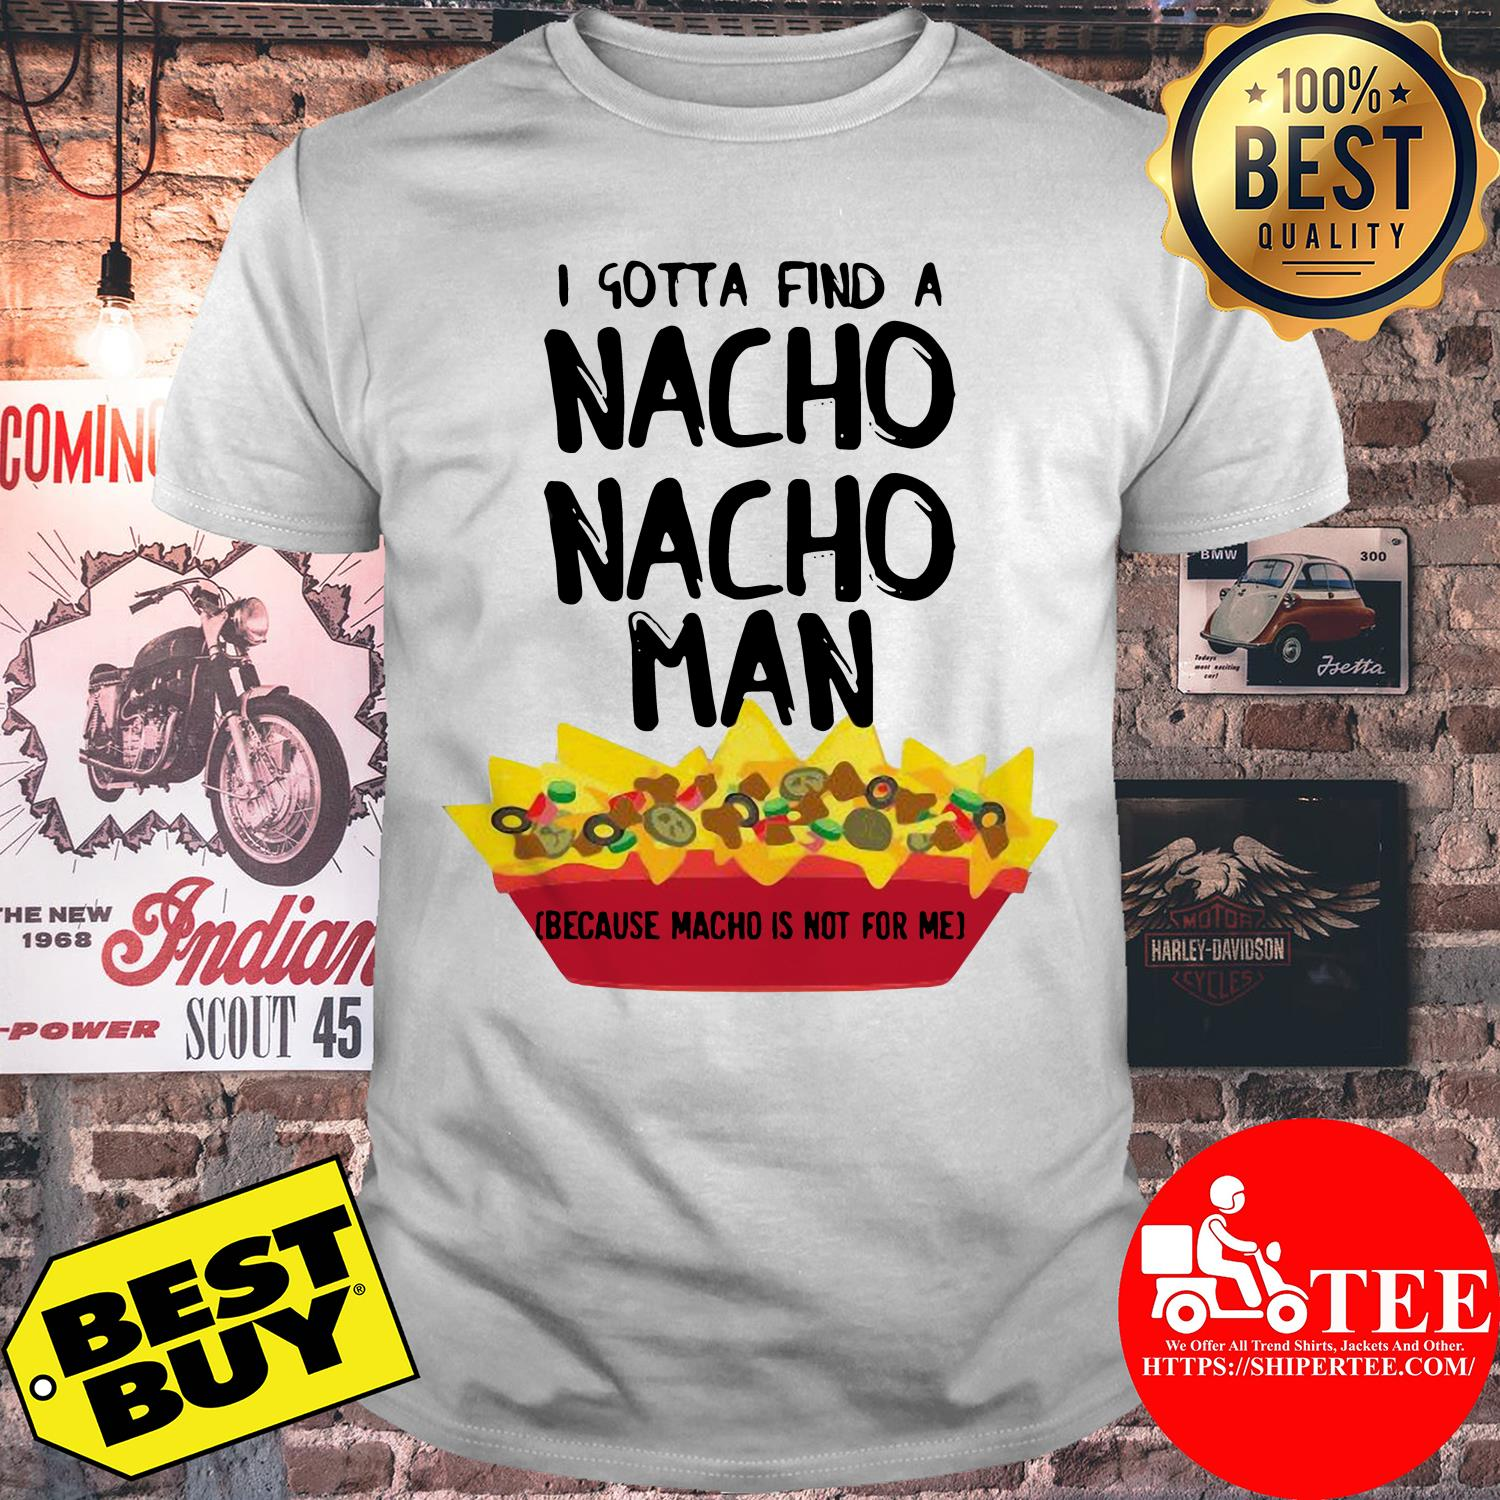 I gotta find a nacho nacho man because nacho is not for me shirt